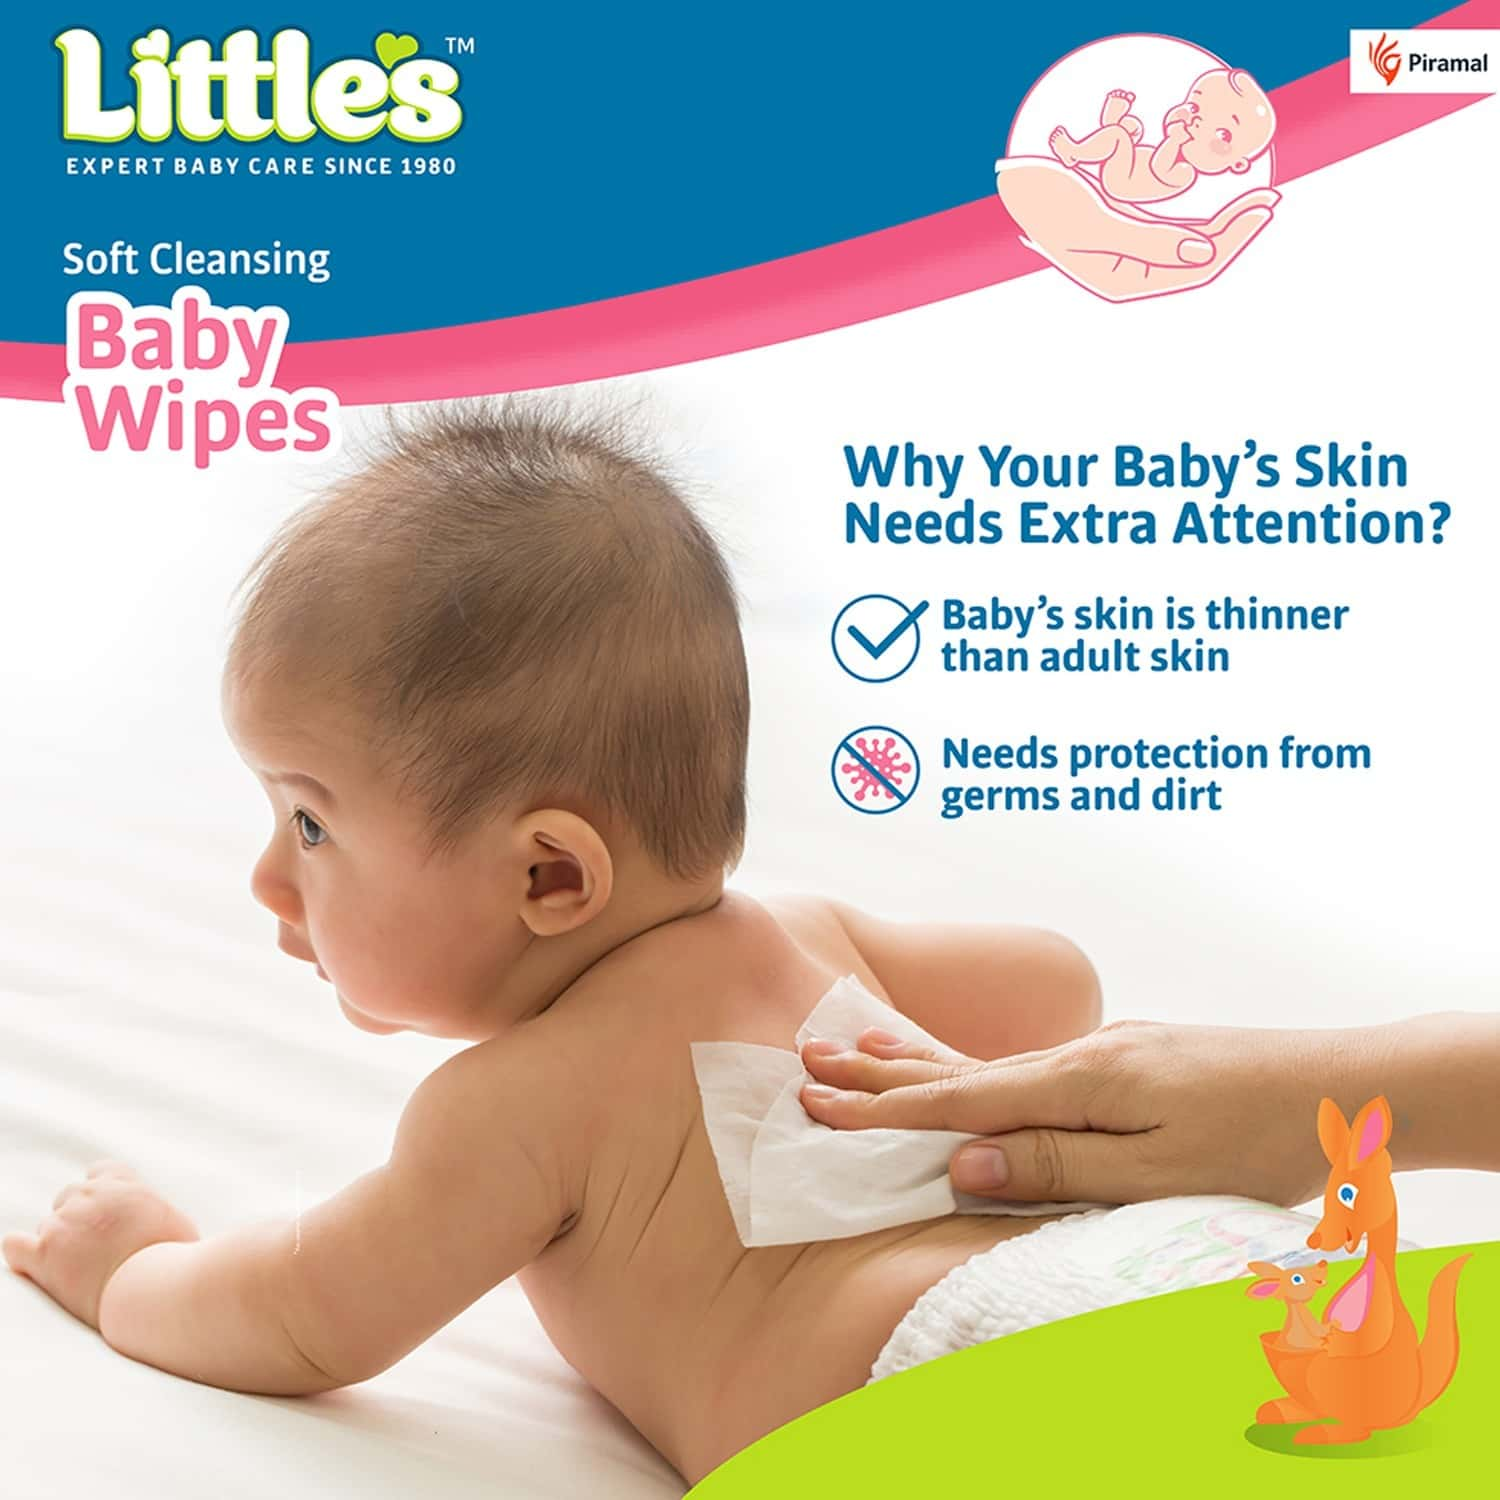 Little's Soft Cleansing Baby Wipes With Aloe Vera Jojoba Oil And Vitamin E - 80 Wipes ( Lid Pack )